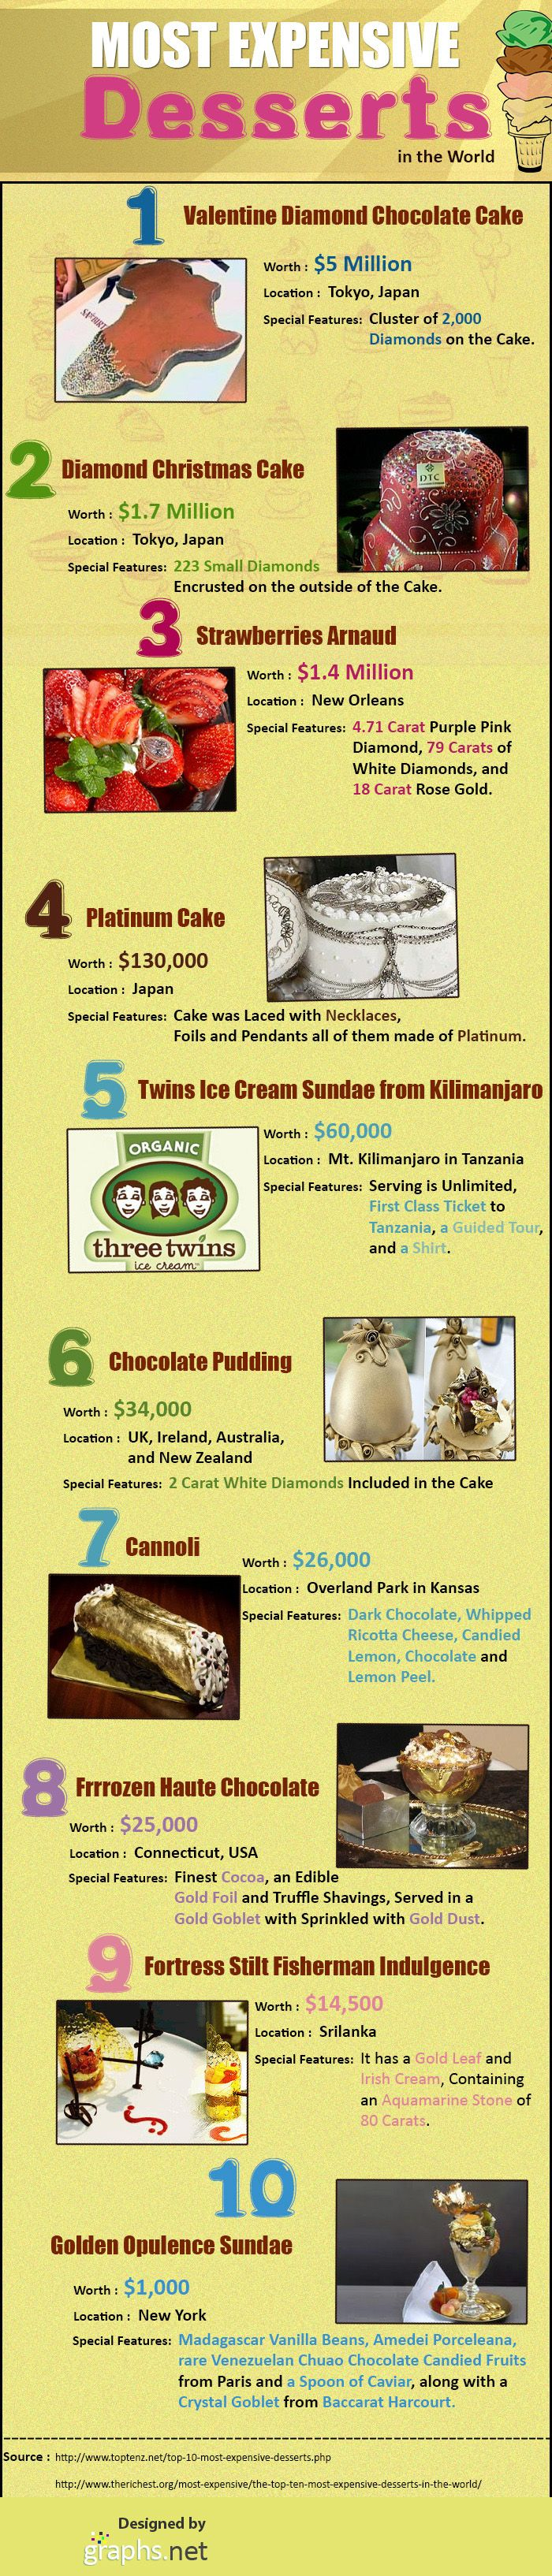 The most expensive desserts in the world! Crazy!